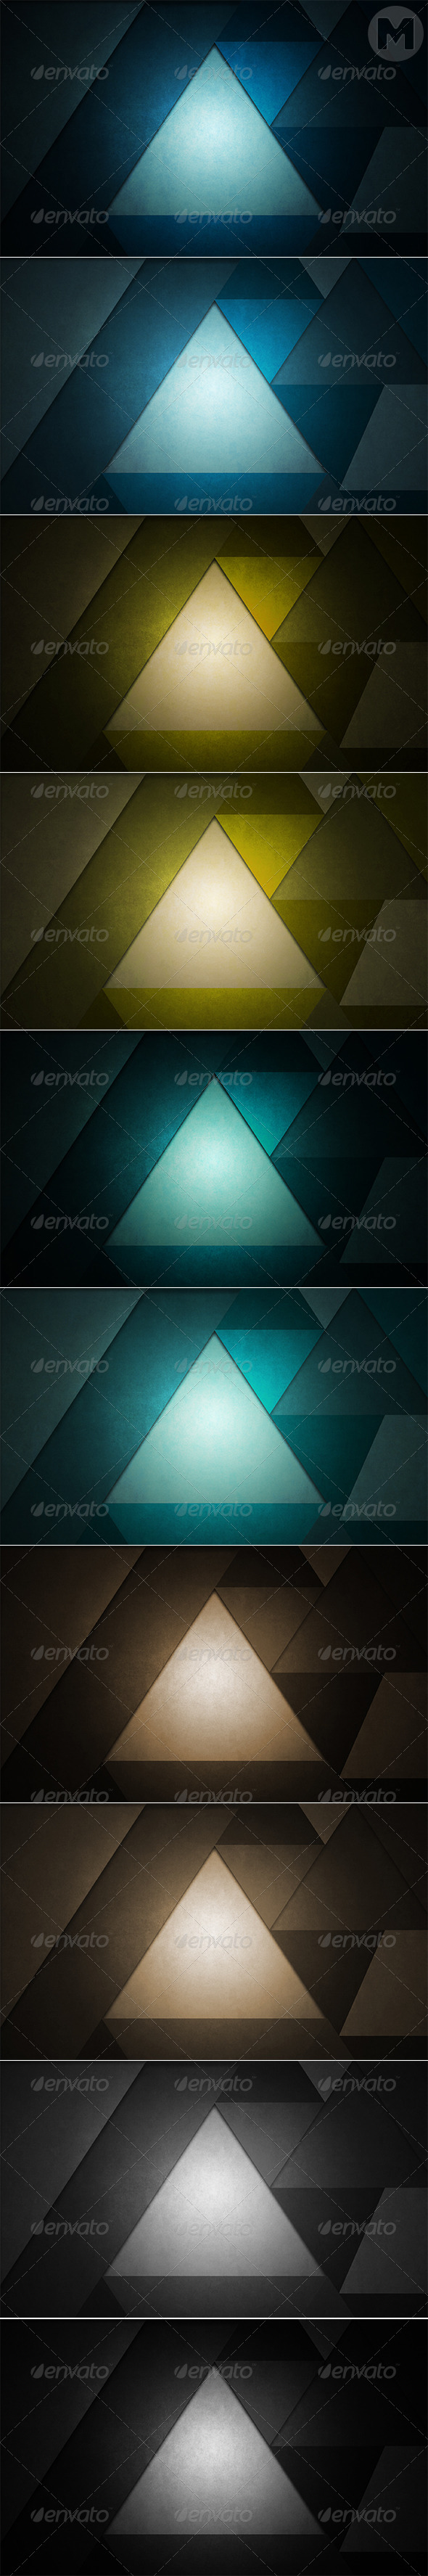 GraphicRiver Grunge Triangle Backgrounds 7640193